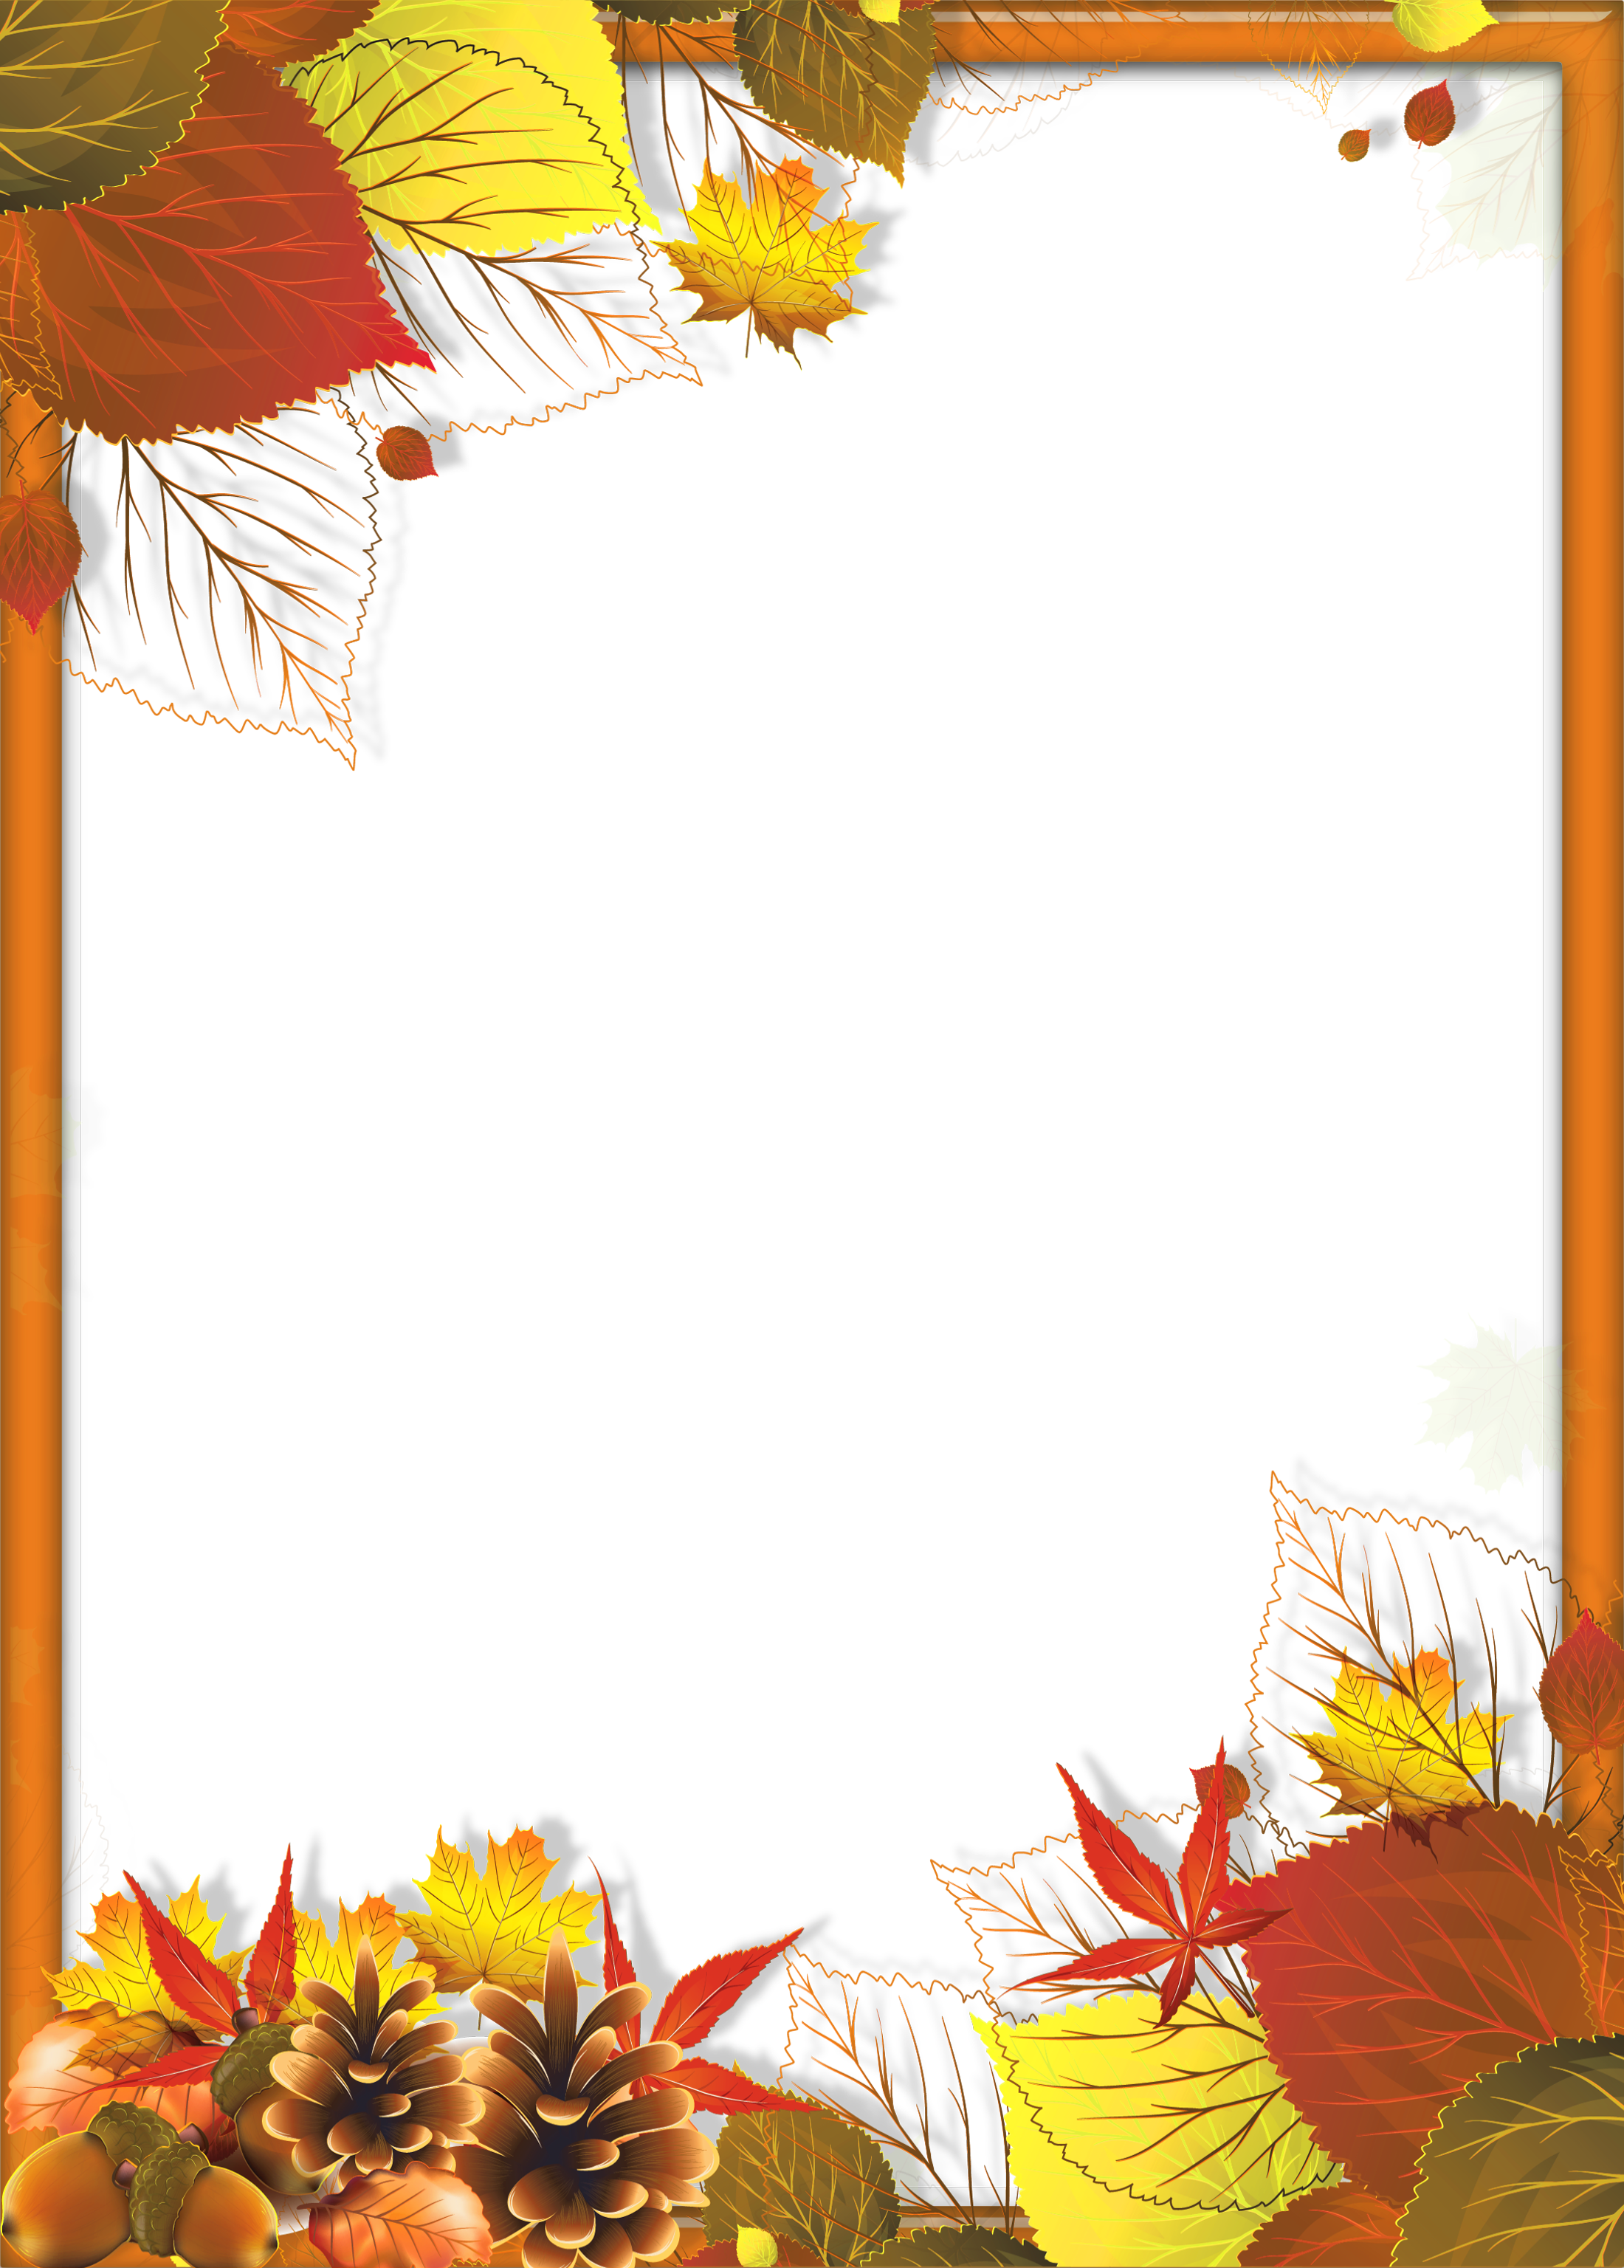 Transparent Fall PNG Frame with Leaves | apsveikumi ...